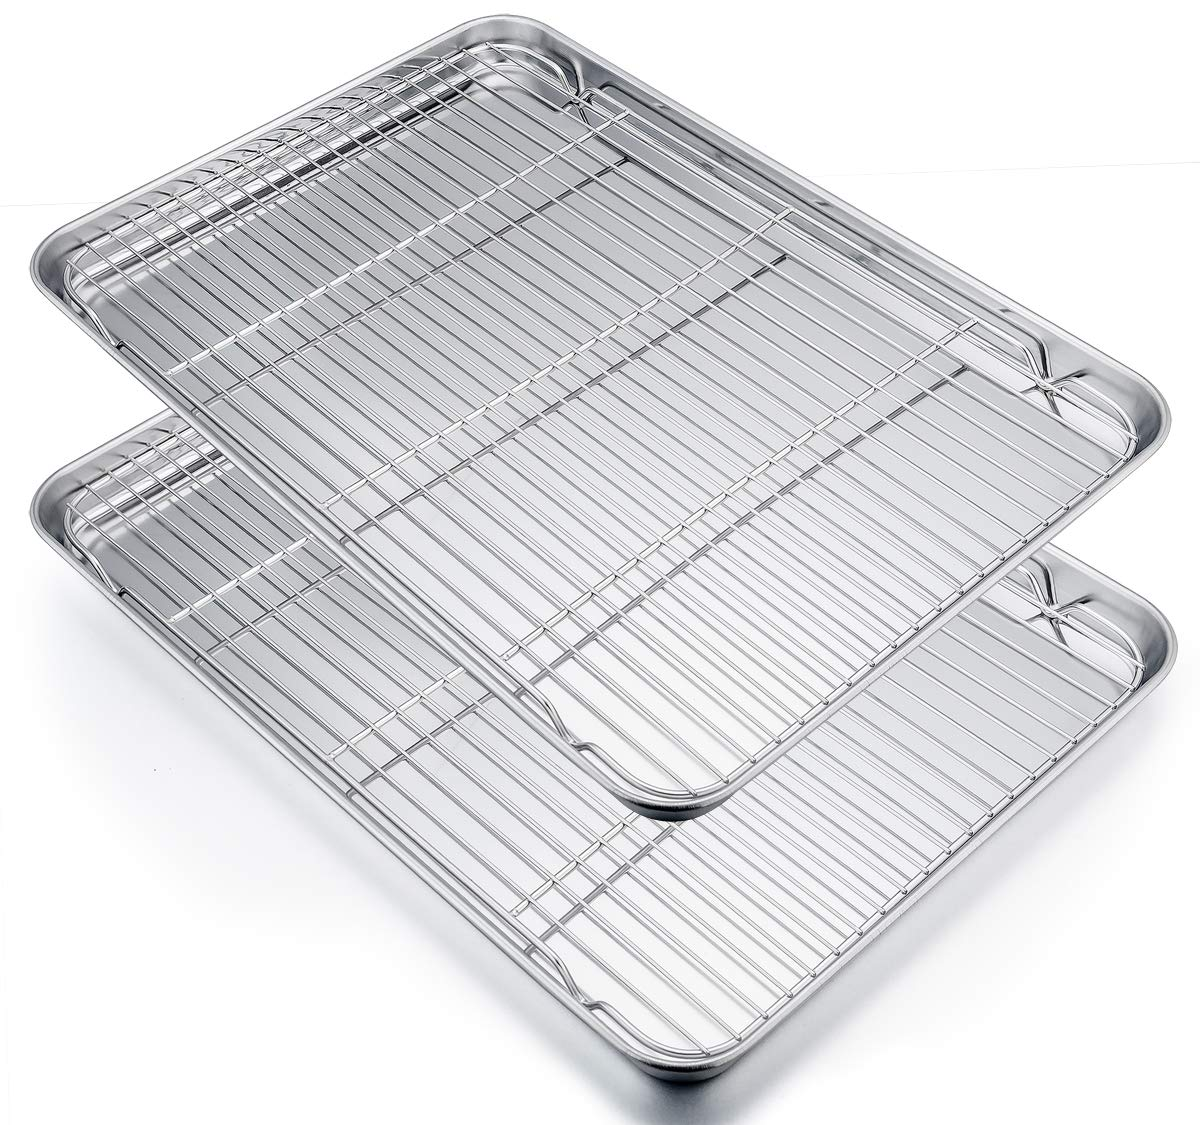 P&P CHEF Extra Large Baking Sheet and Cooking Rack Set, Stainless Steel Cookie Half Sheet Pan with grill rack, Rectangle 19.6''x13.5''x1.2'', Oven & Dishwasher Safe, 4 Piece (2 Pans+2 Racks) by P&P CHEF